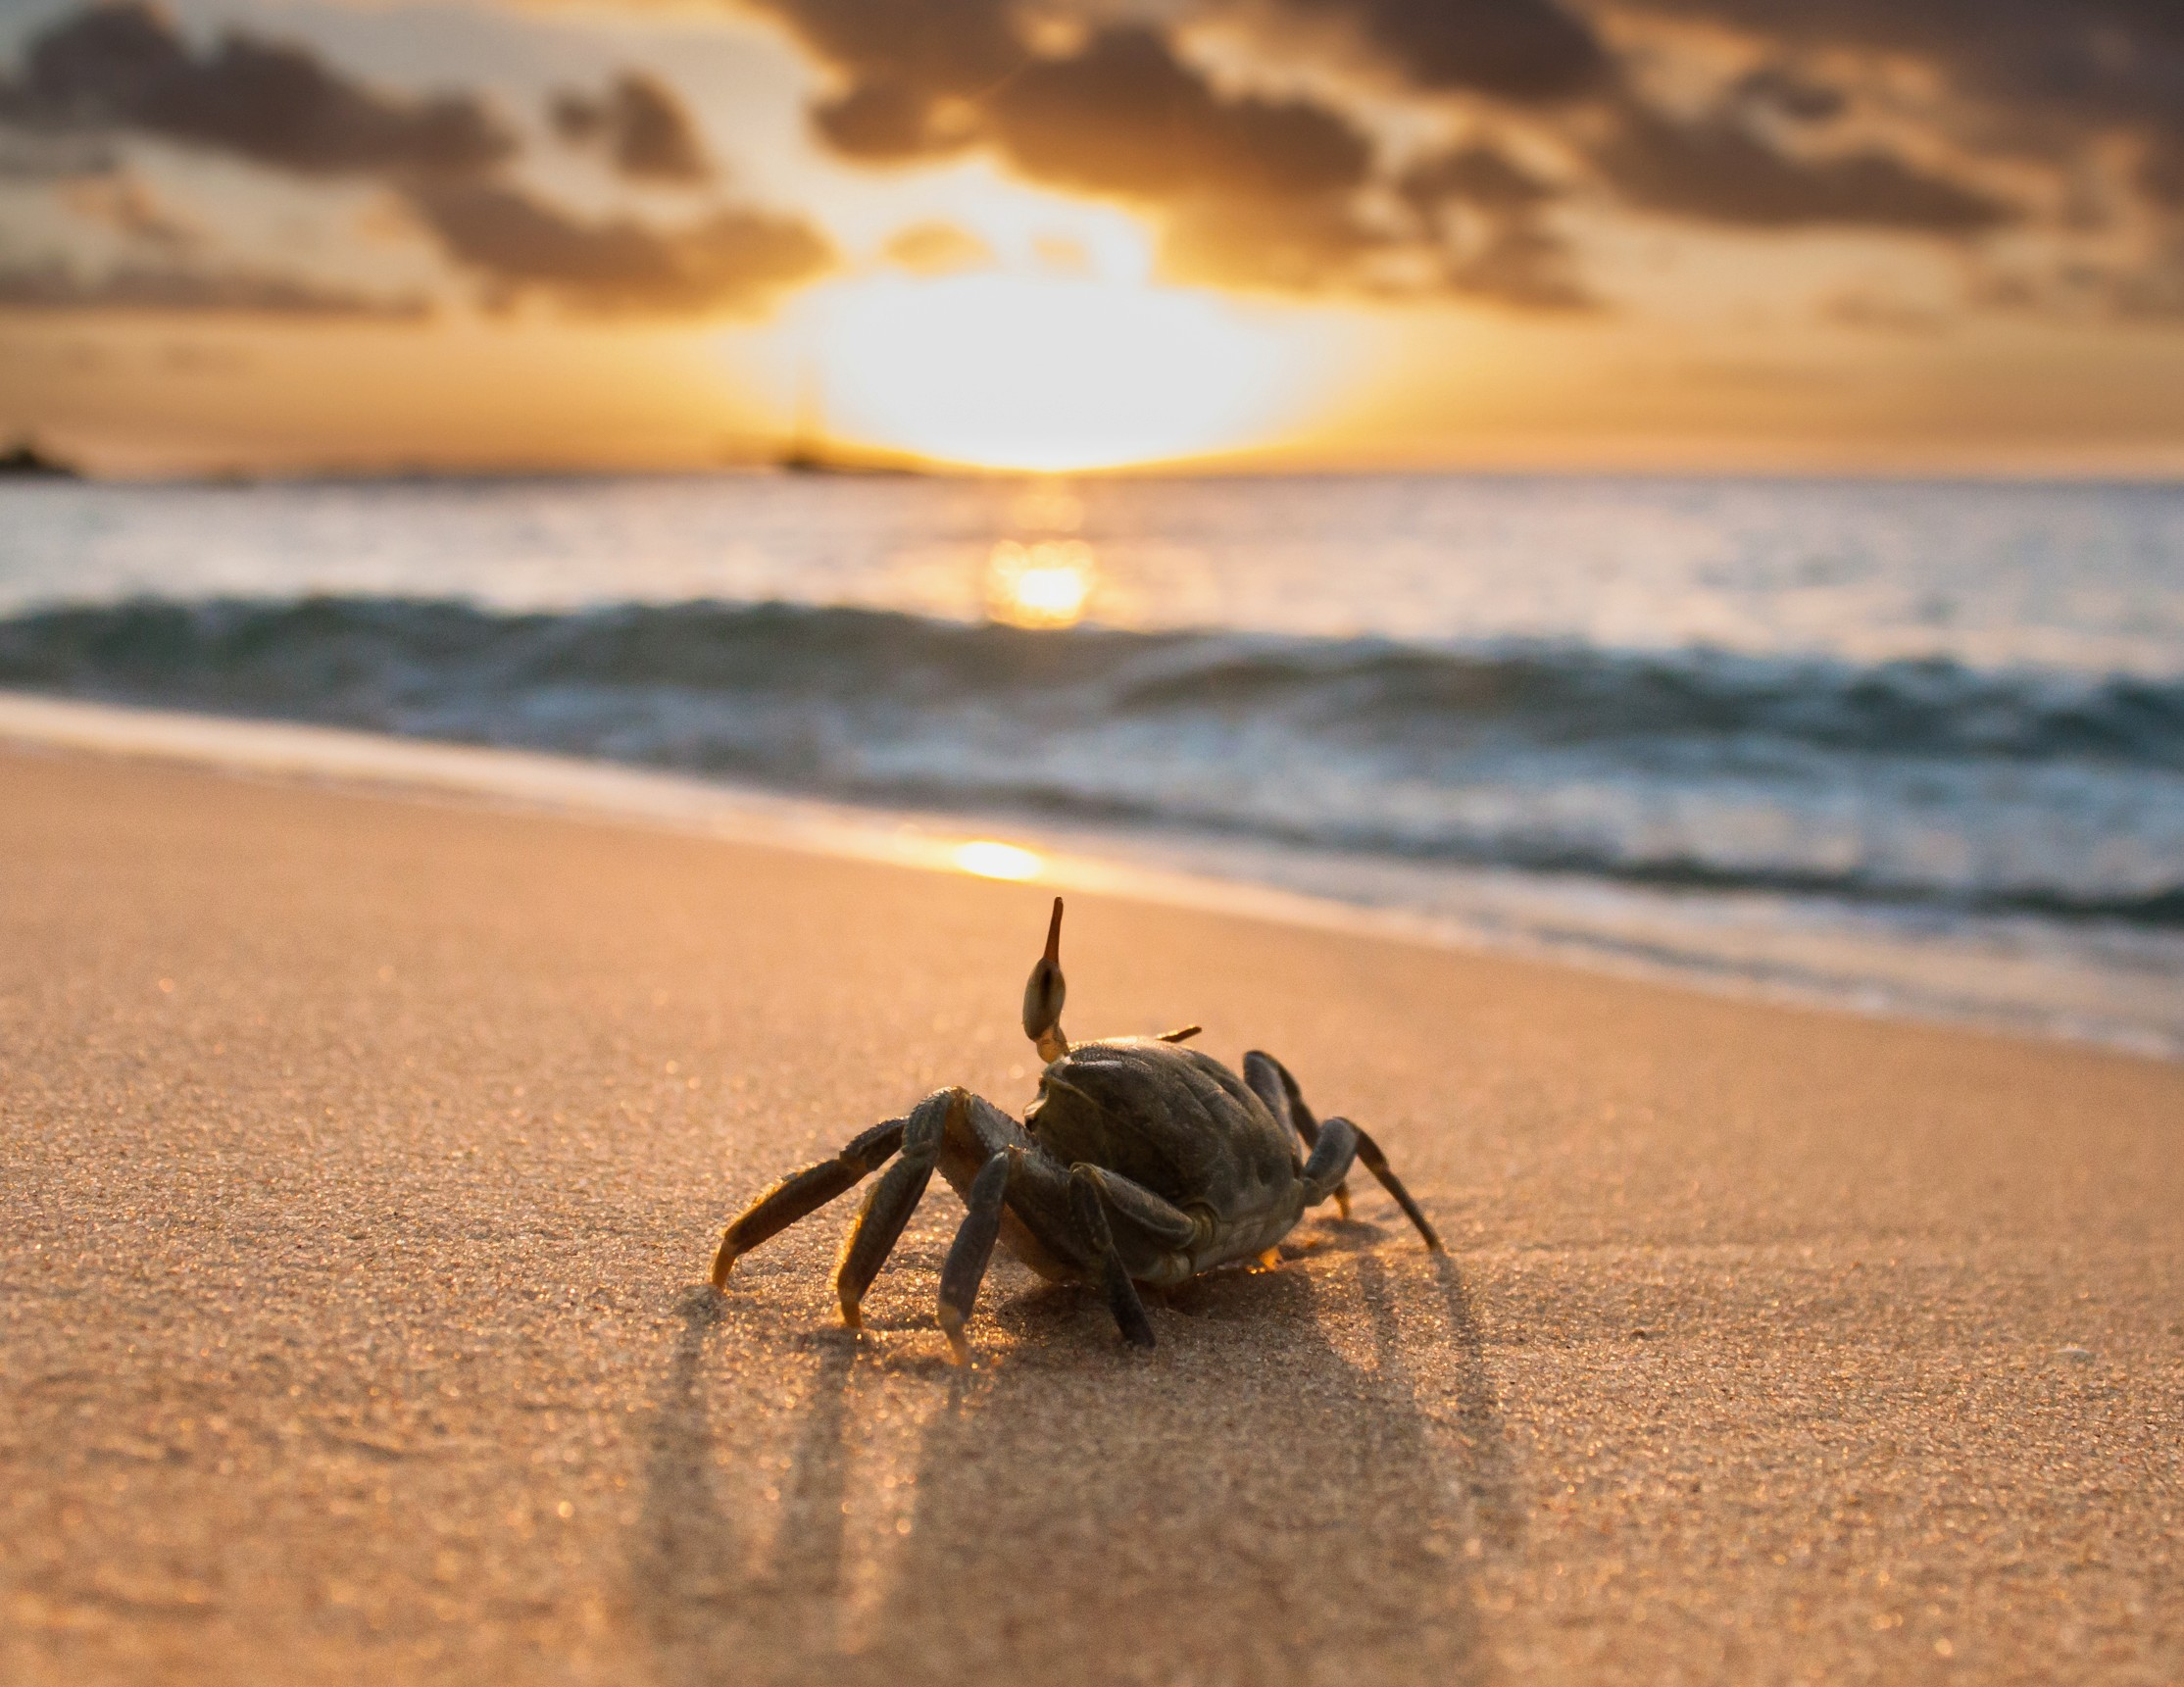 Tiny crab found in 100-million-year-old amber - Earth.com